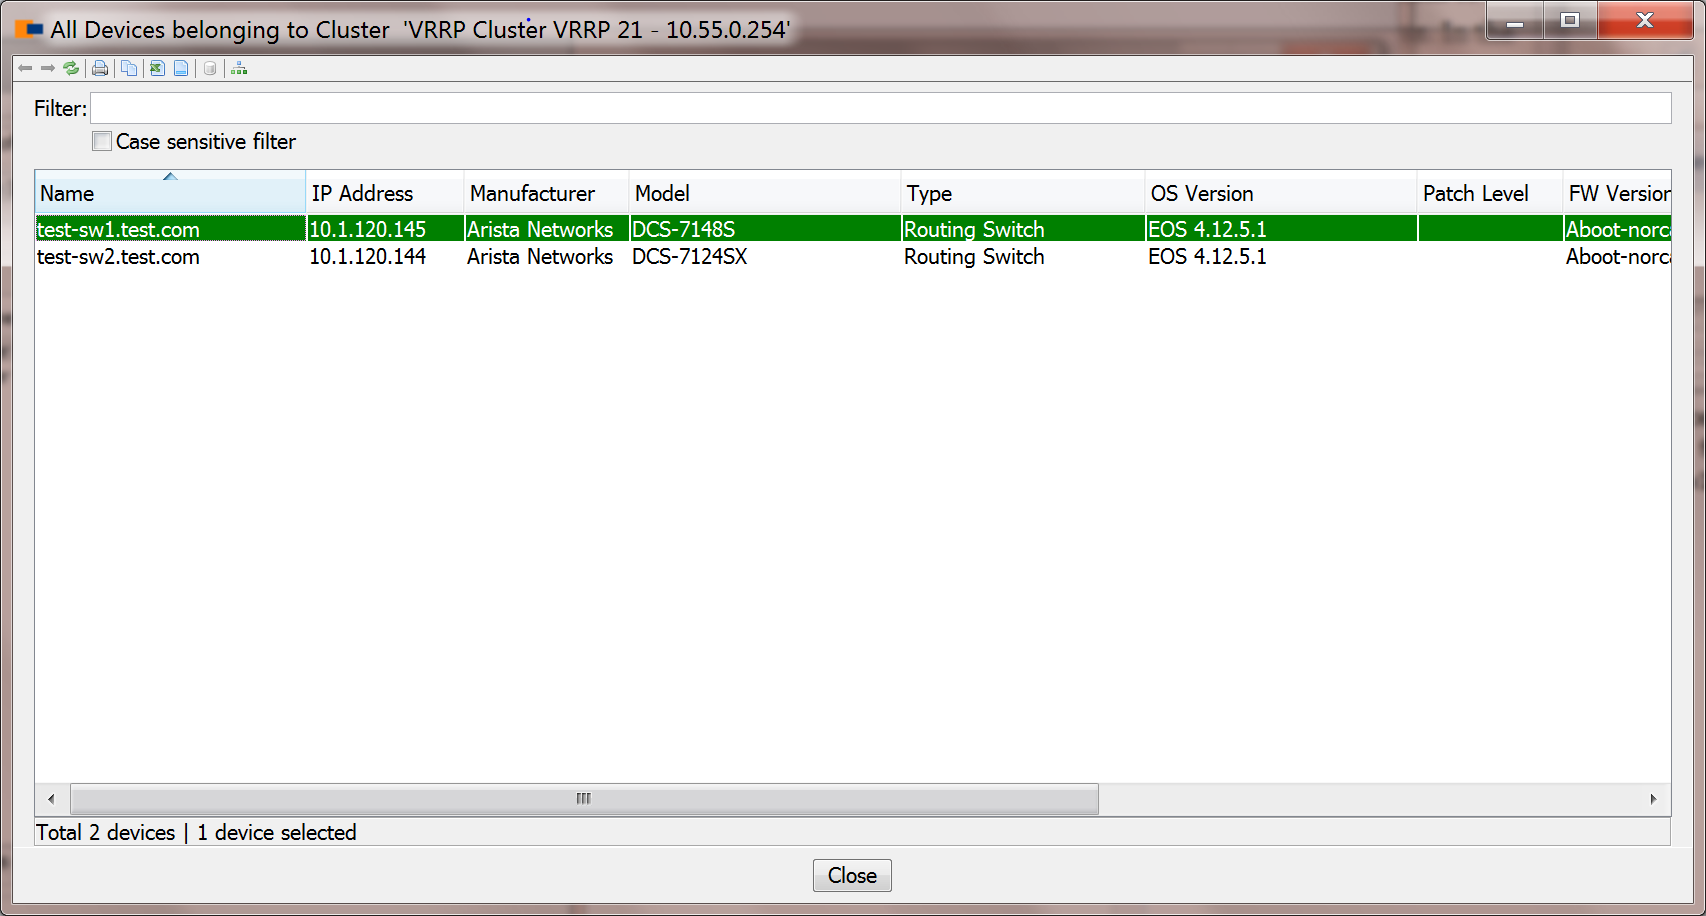 VRRP Cluster Devices